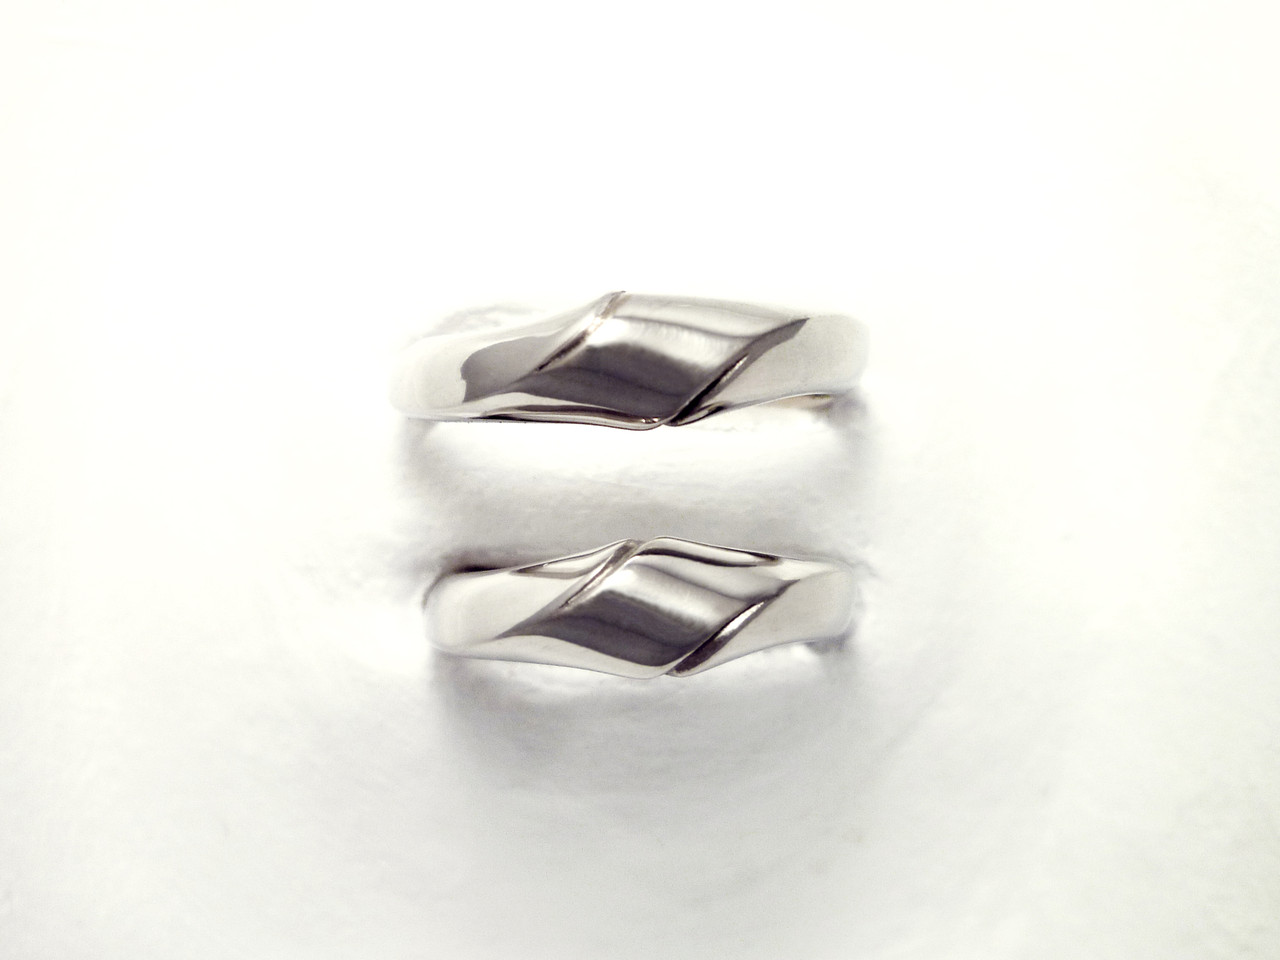 Platinum marriage ring